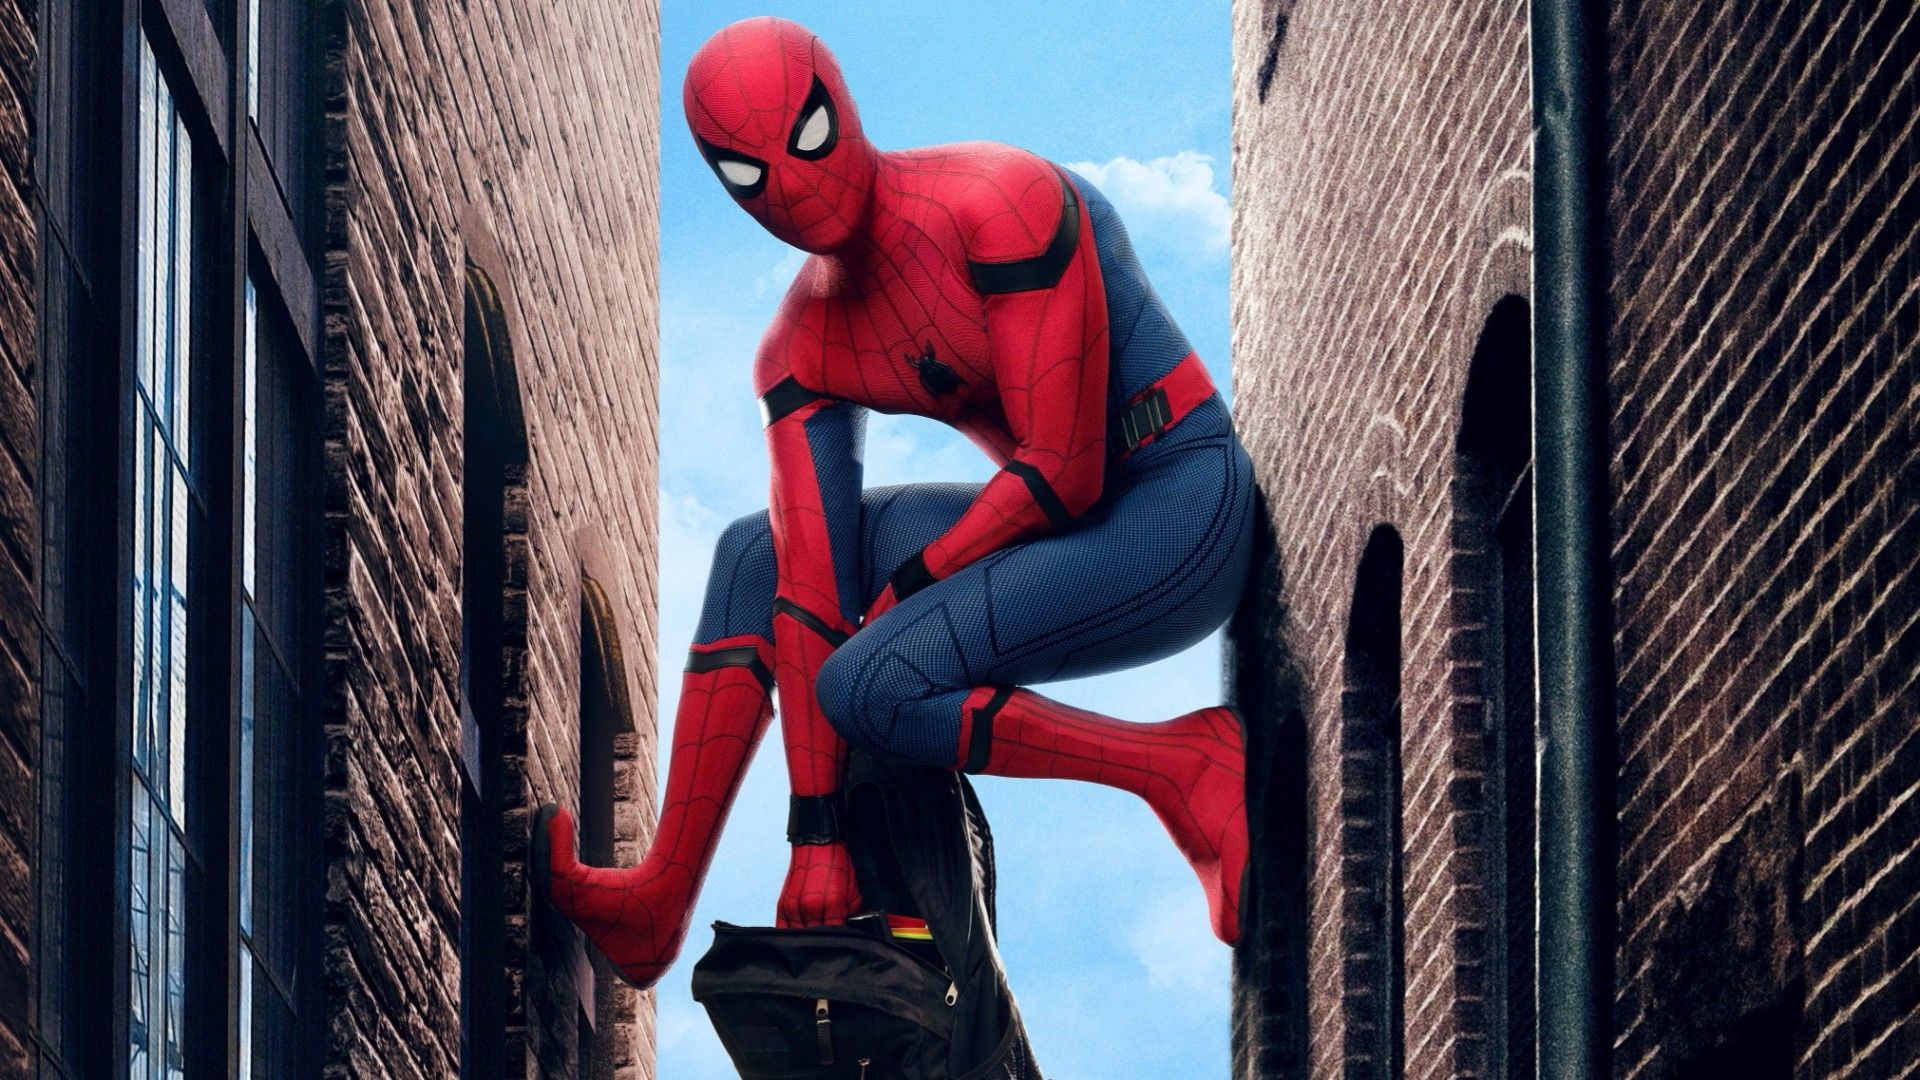 28 Amazing Spiderman Hd Wallpapers Wallpaperboat